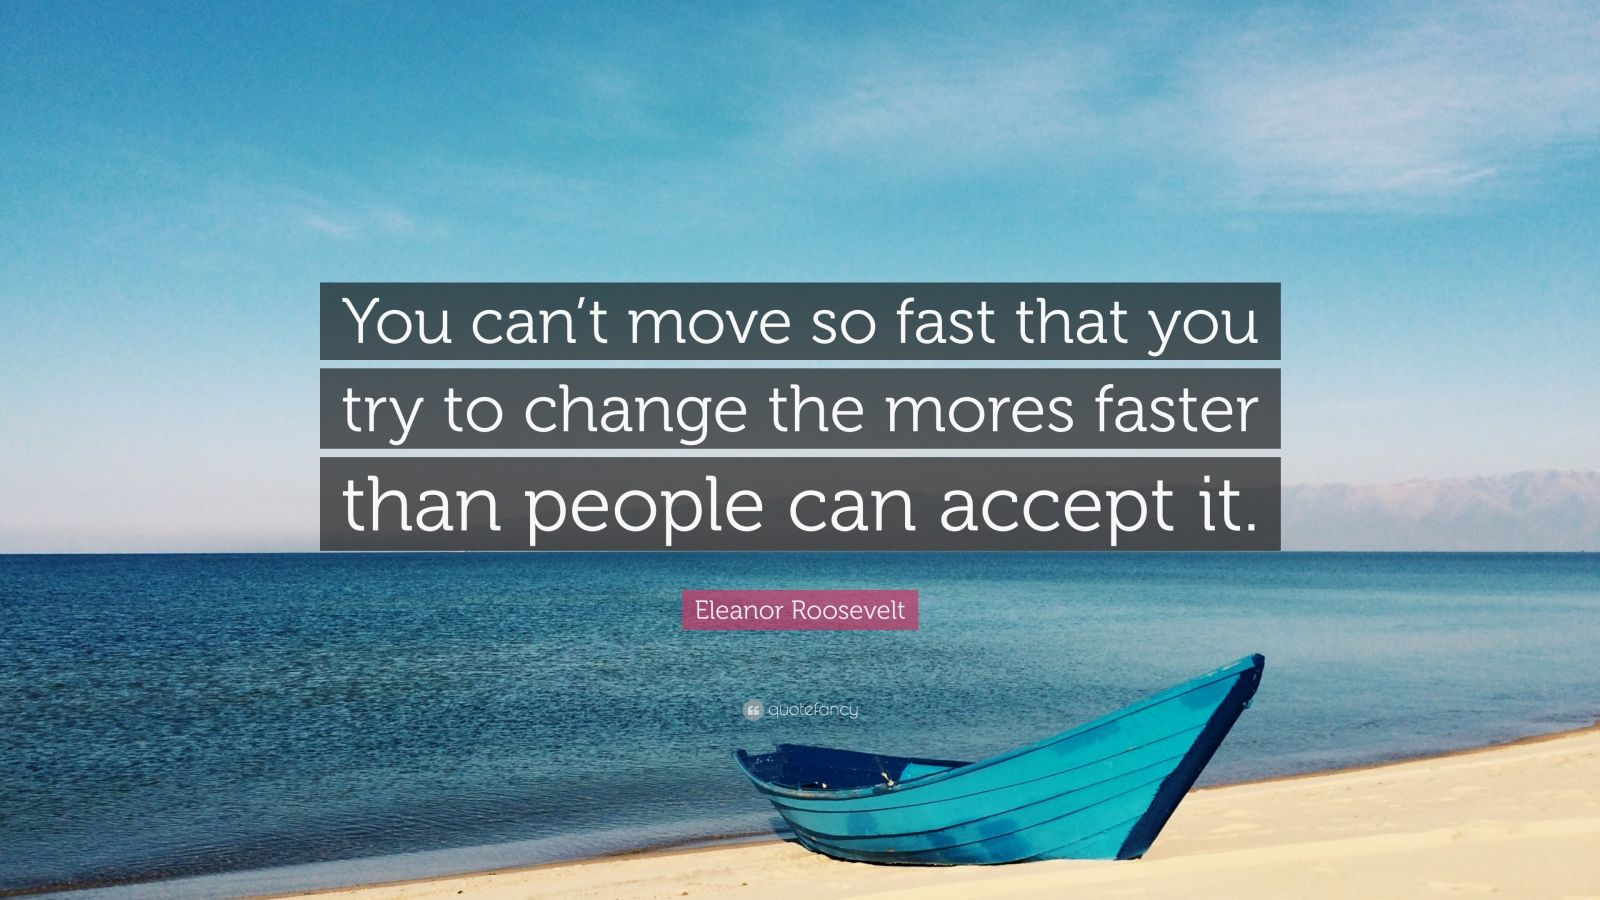 """Eleanor Roosevelt Quote: """"You can't move so fast that you try to change the mores faster than people can accept it."""""""